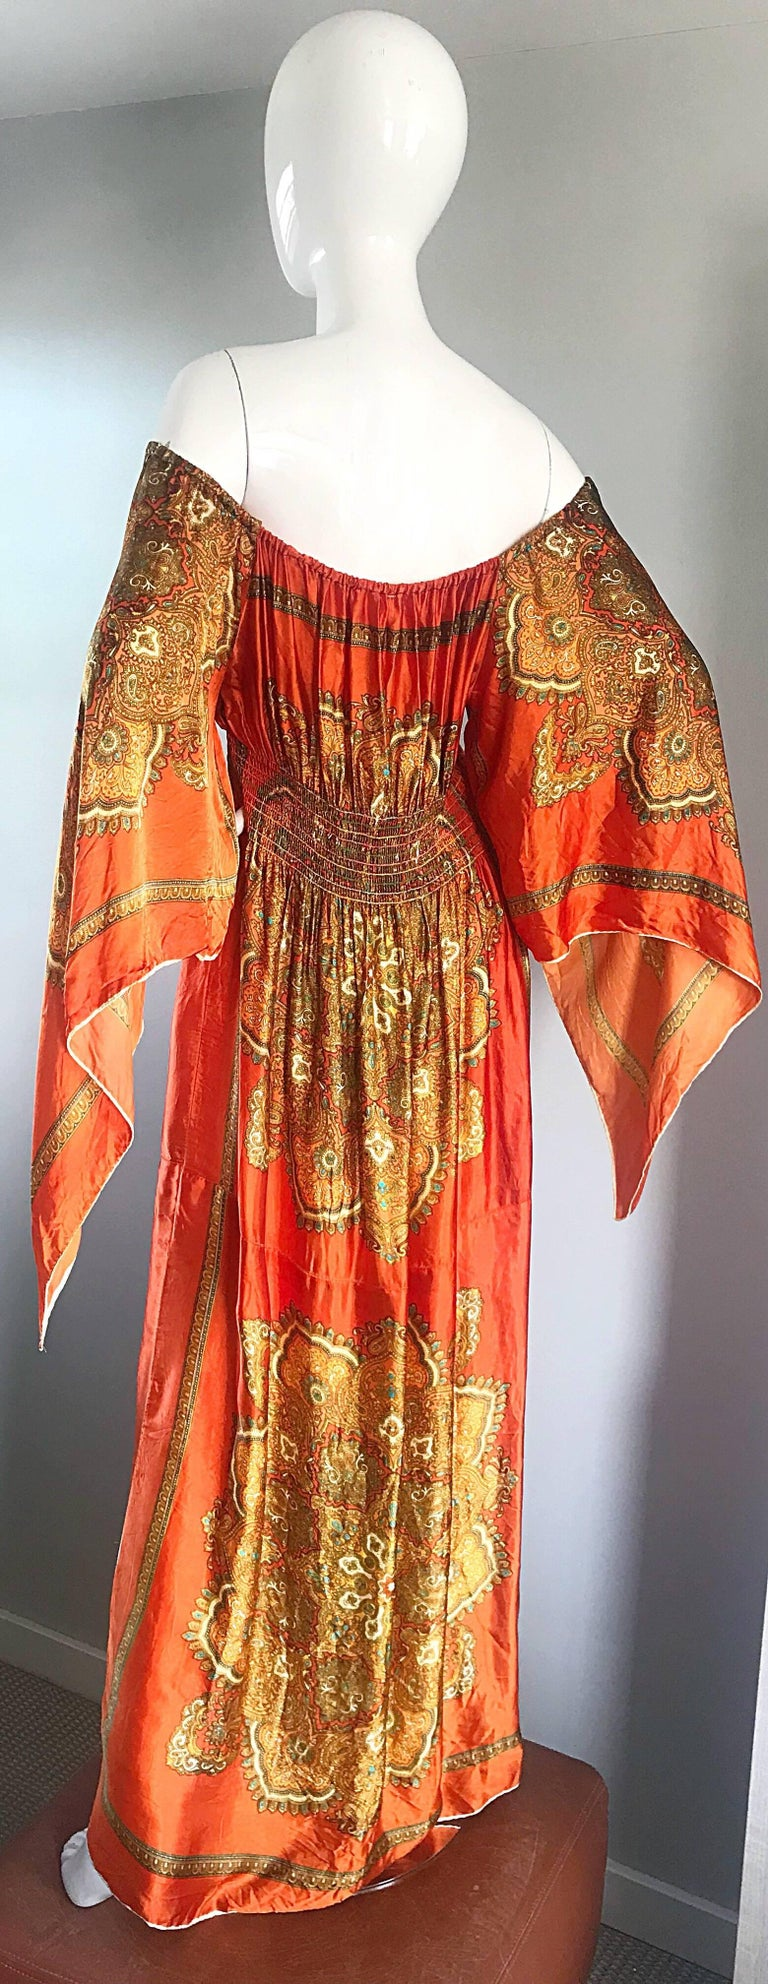 Amazing 1970s Off - Shoulder Boho Ethnic Print Silky Vintage 70s Maxi Dress 7